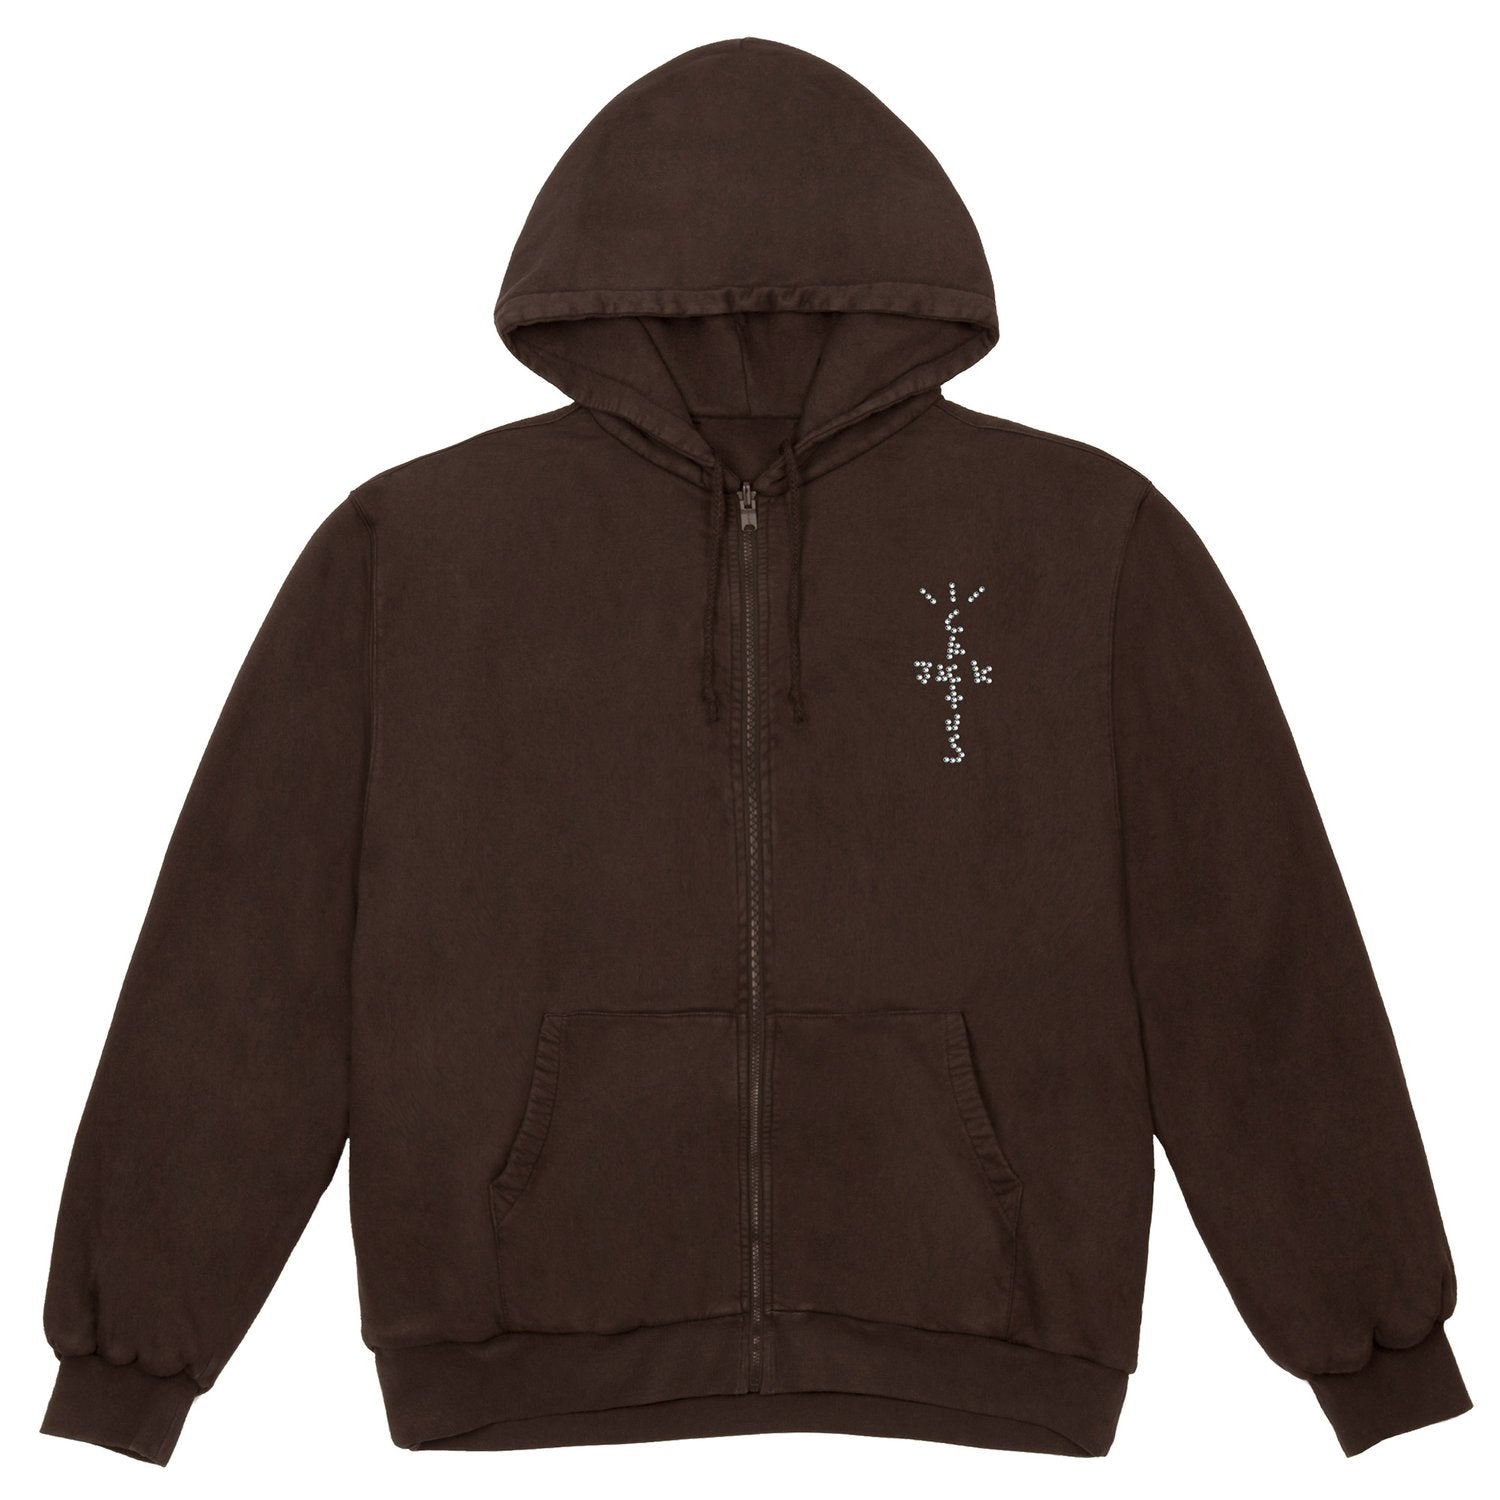 Travis Scott Franchise Live From Utopia Yup! Rhinestone Hoodie